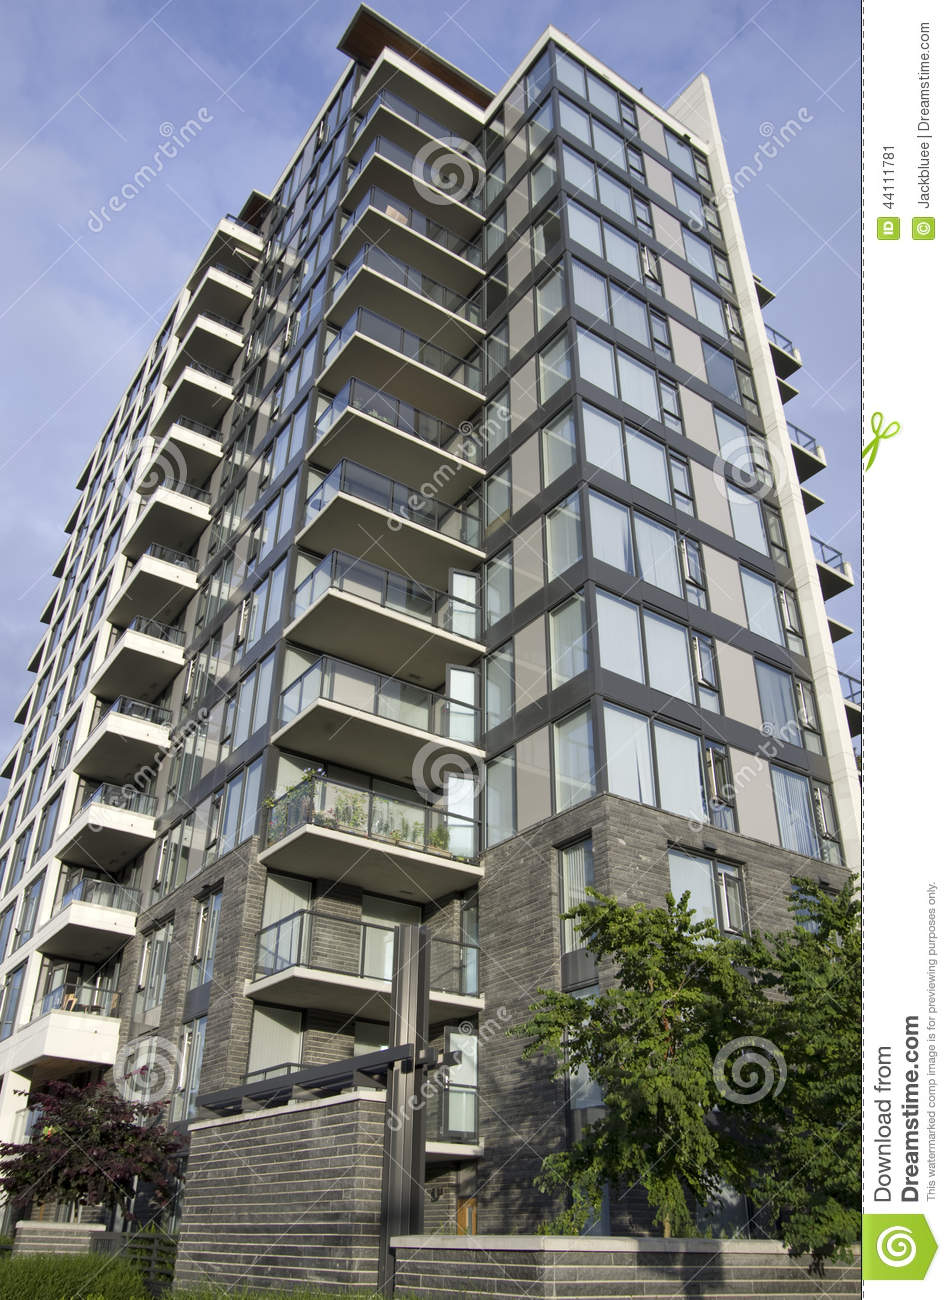 Modern Apartment Building Stock Image. Image Of Design